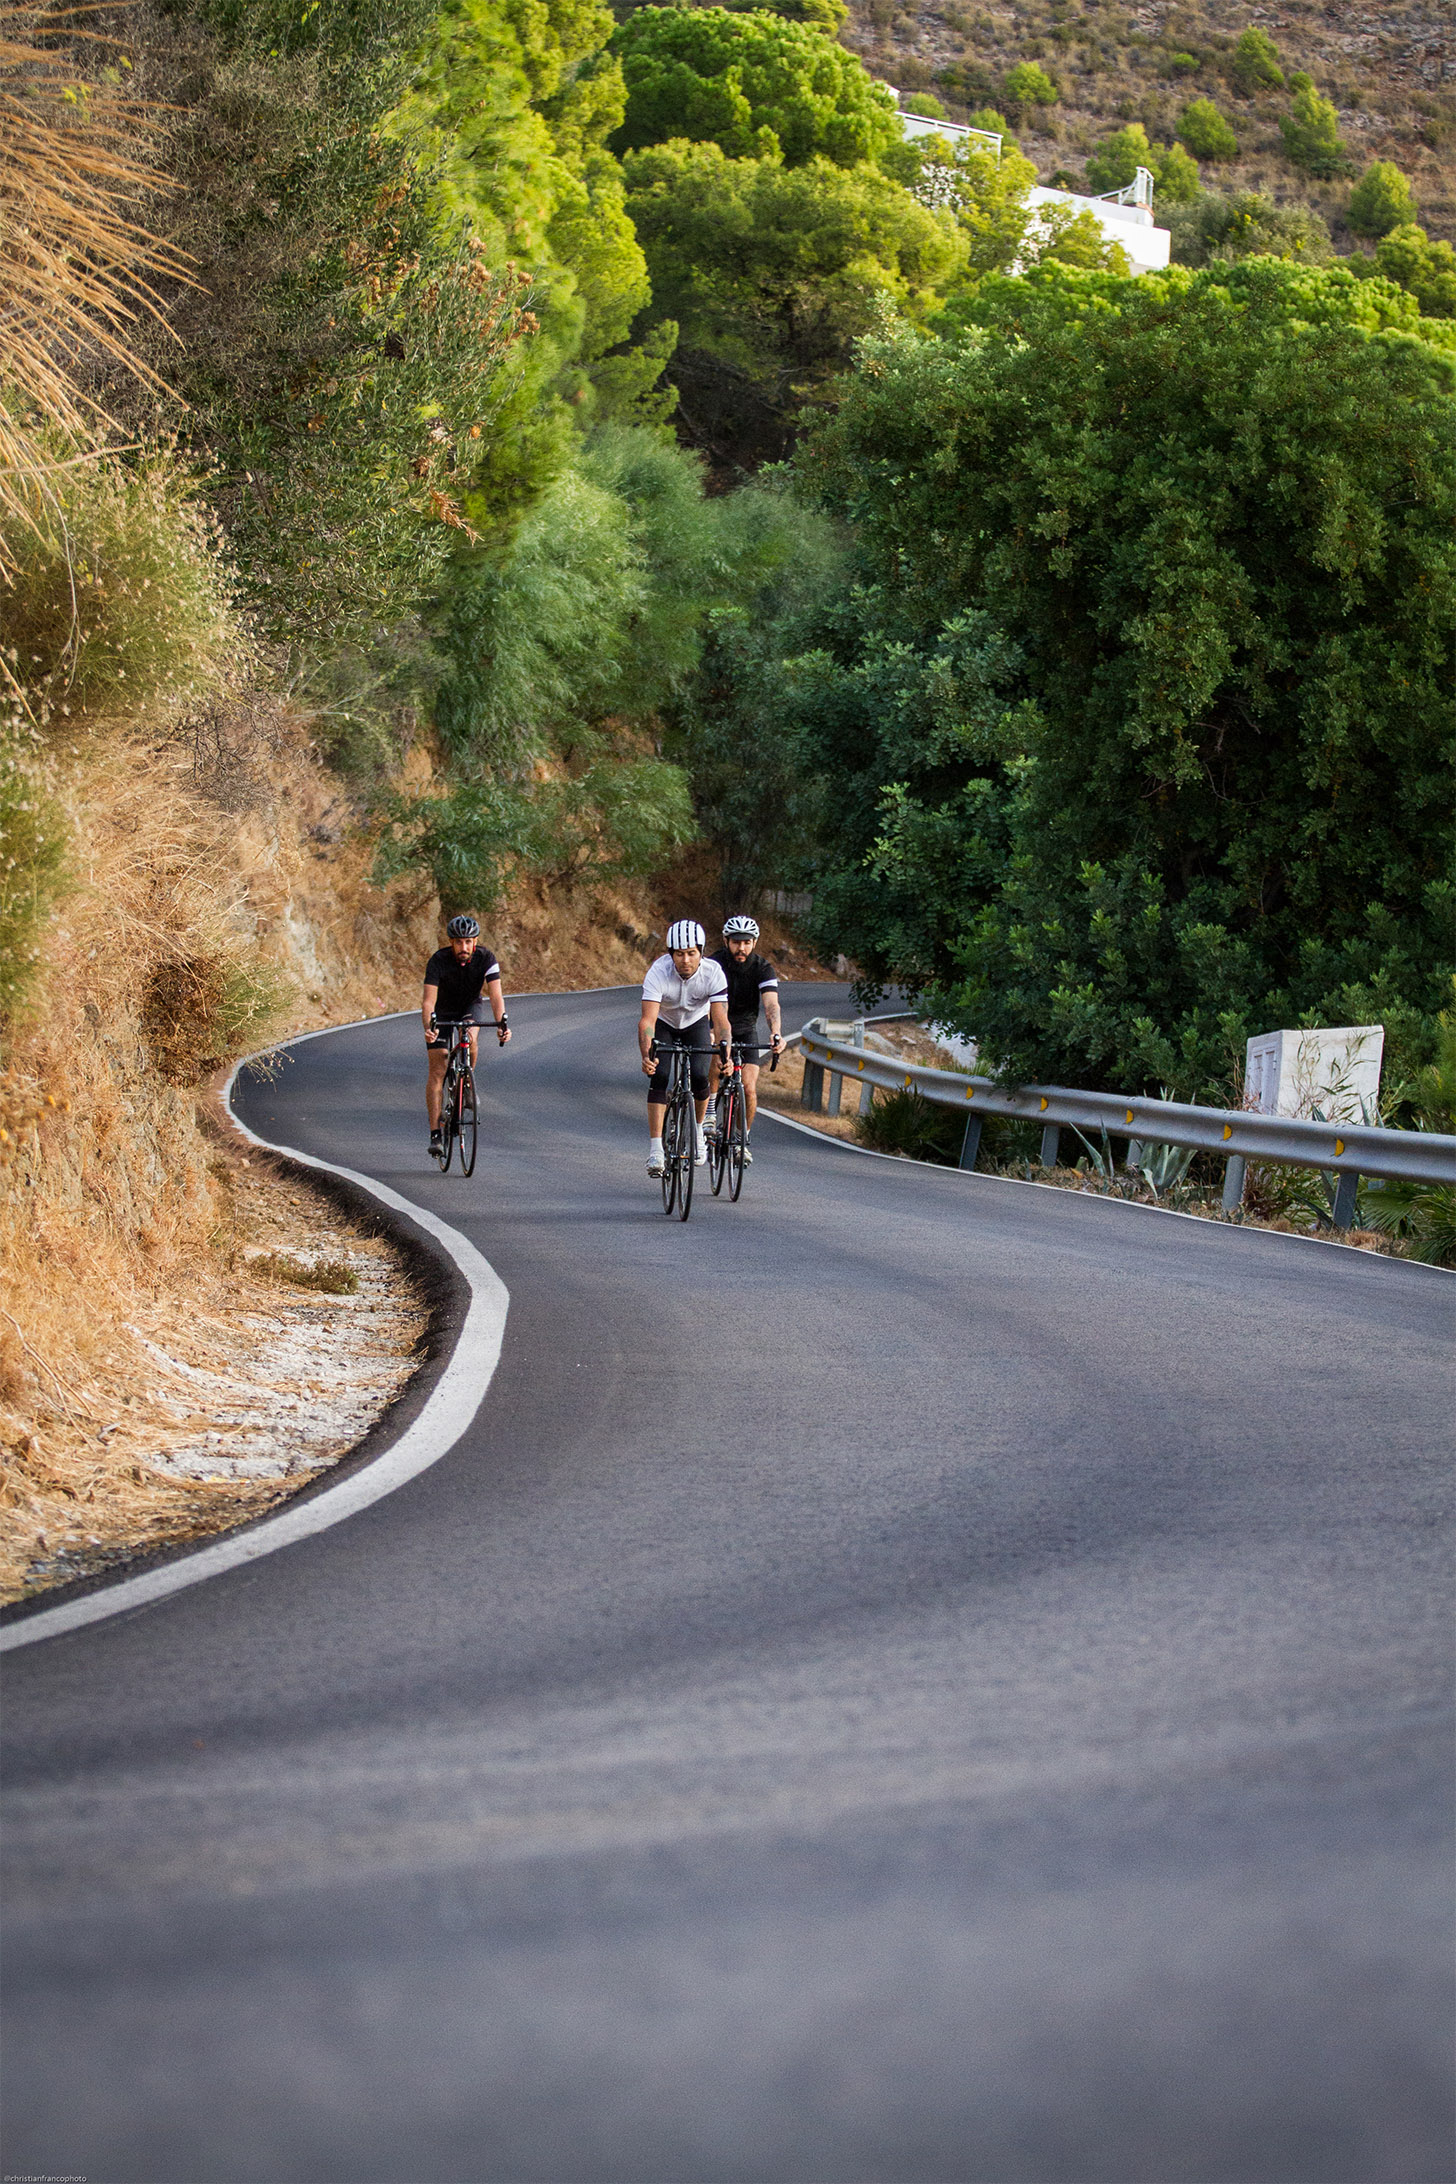 road-bike-hire-malaga-01.jpg